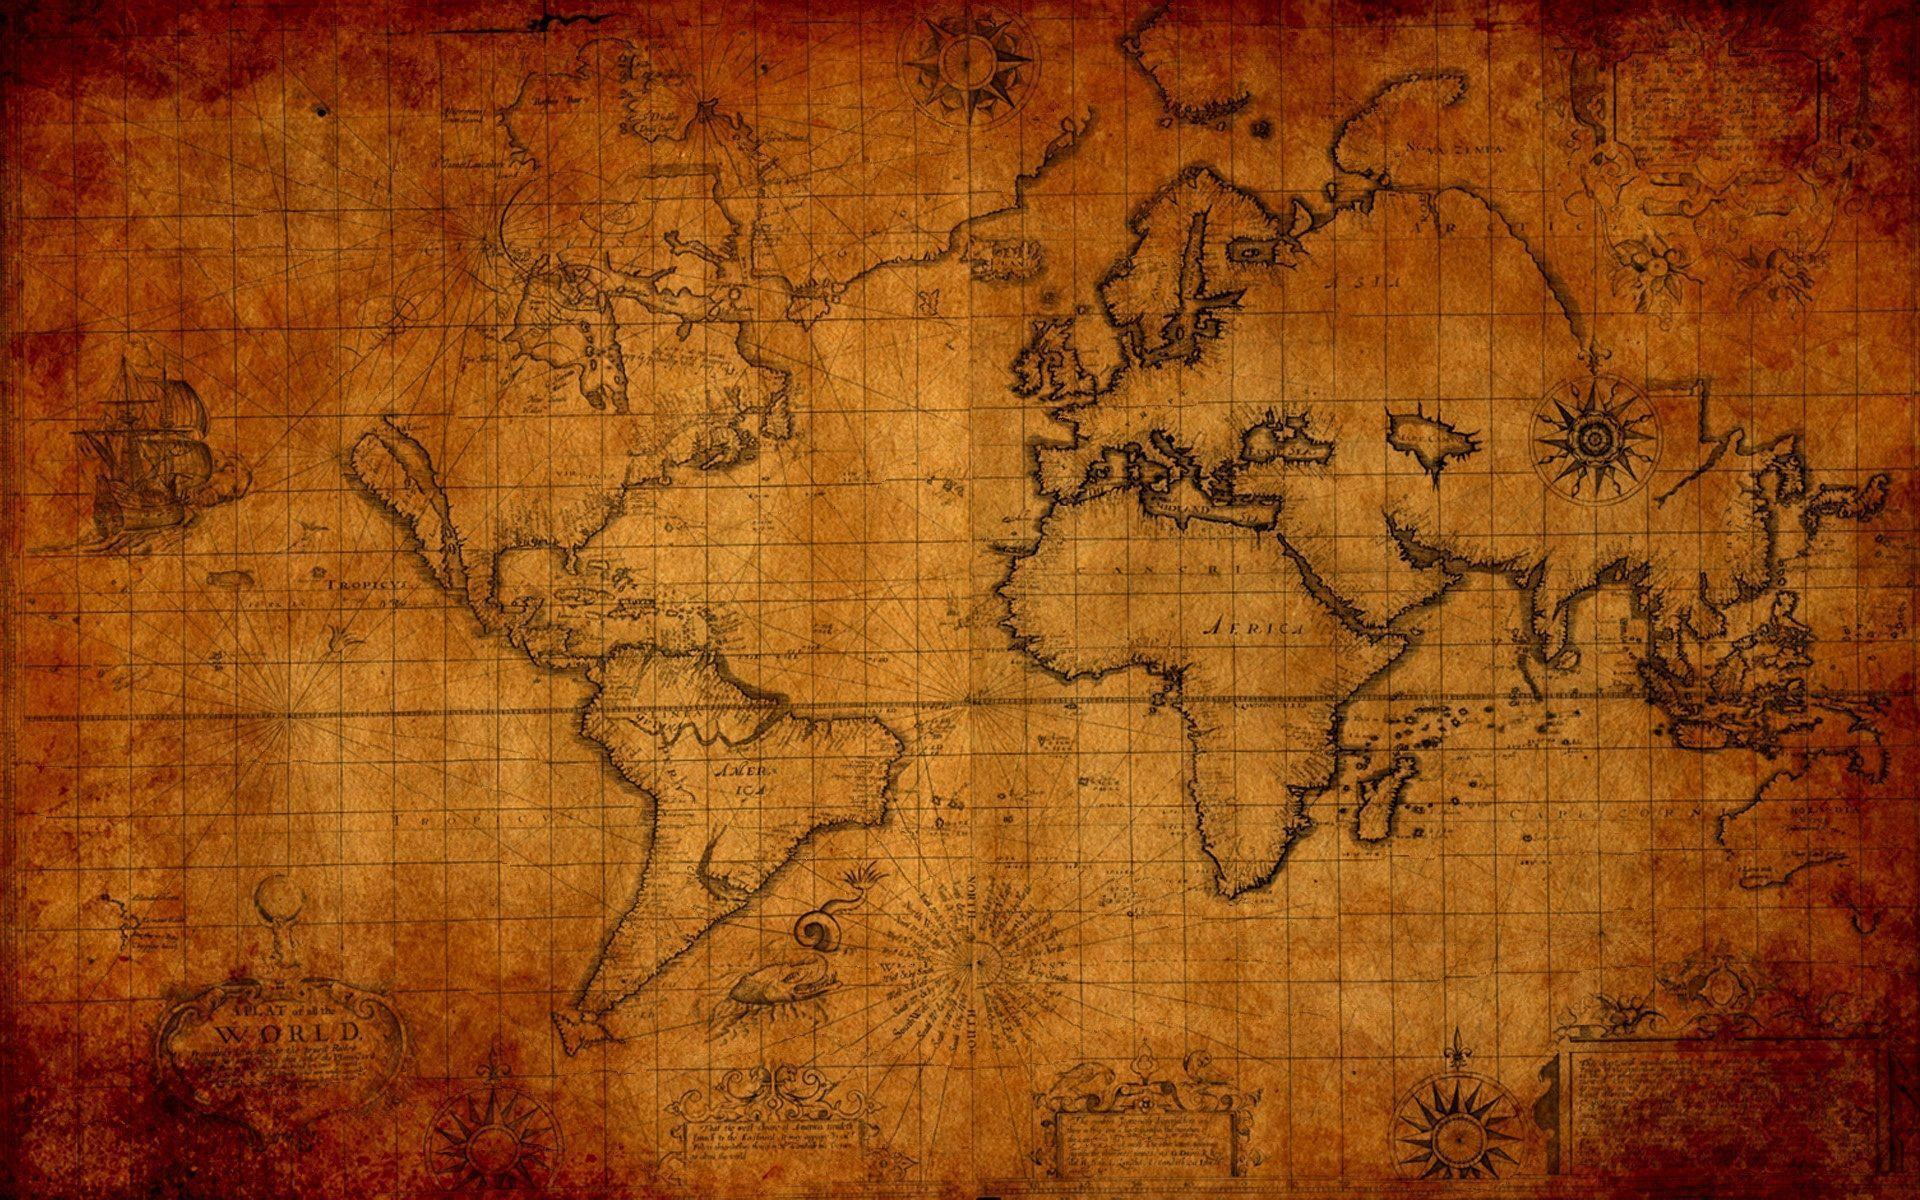 World map wallpapers high resolution wallpaper cave world map wallpapers full hd wallpaper search gumiabroncs Image collections